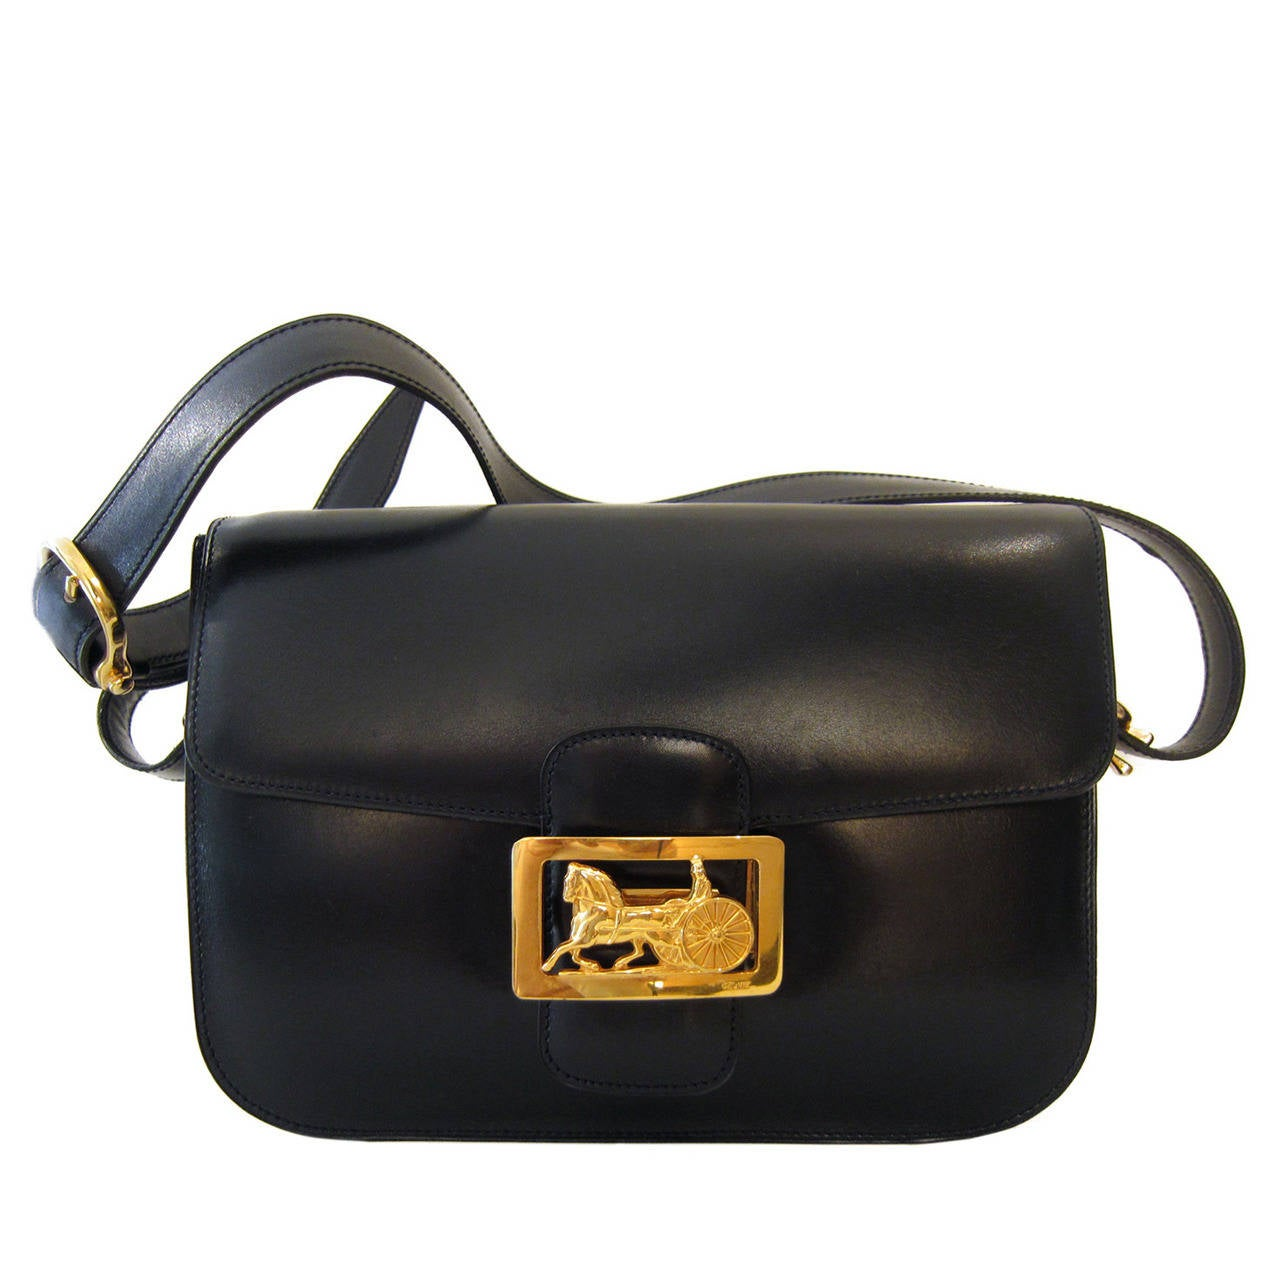 Celine Diffusion 1970 s Shoulder Gold Horse Carriage Box Bag at 1stdibs 794b77a032265